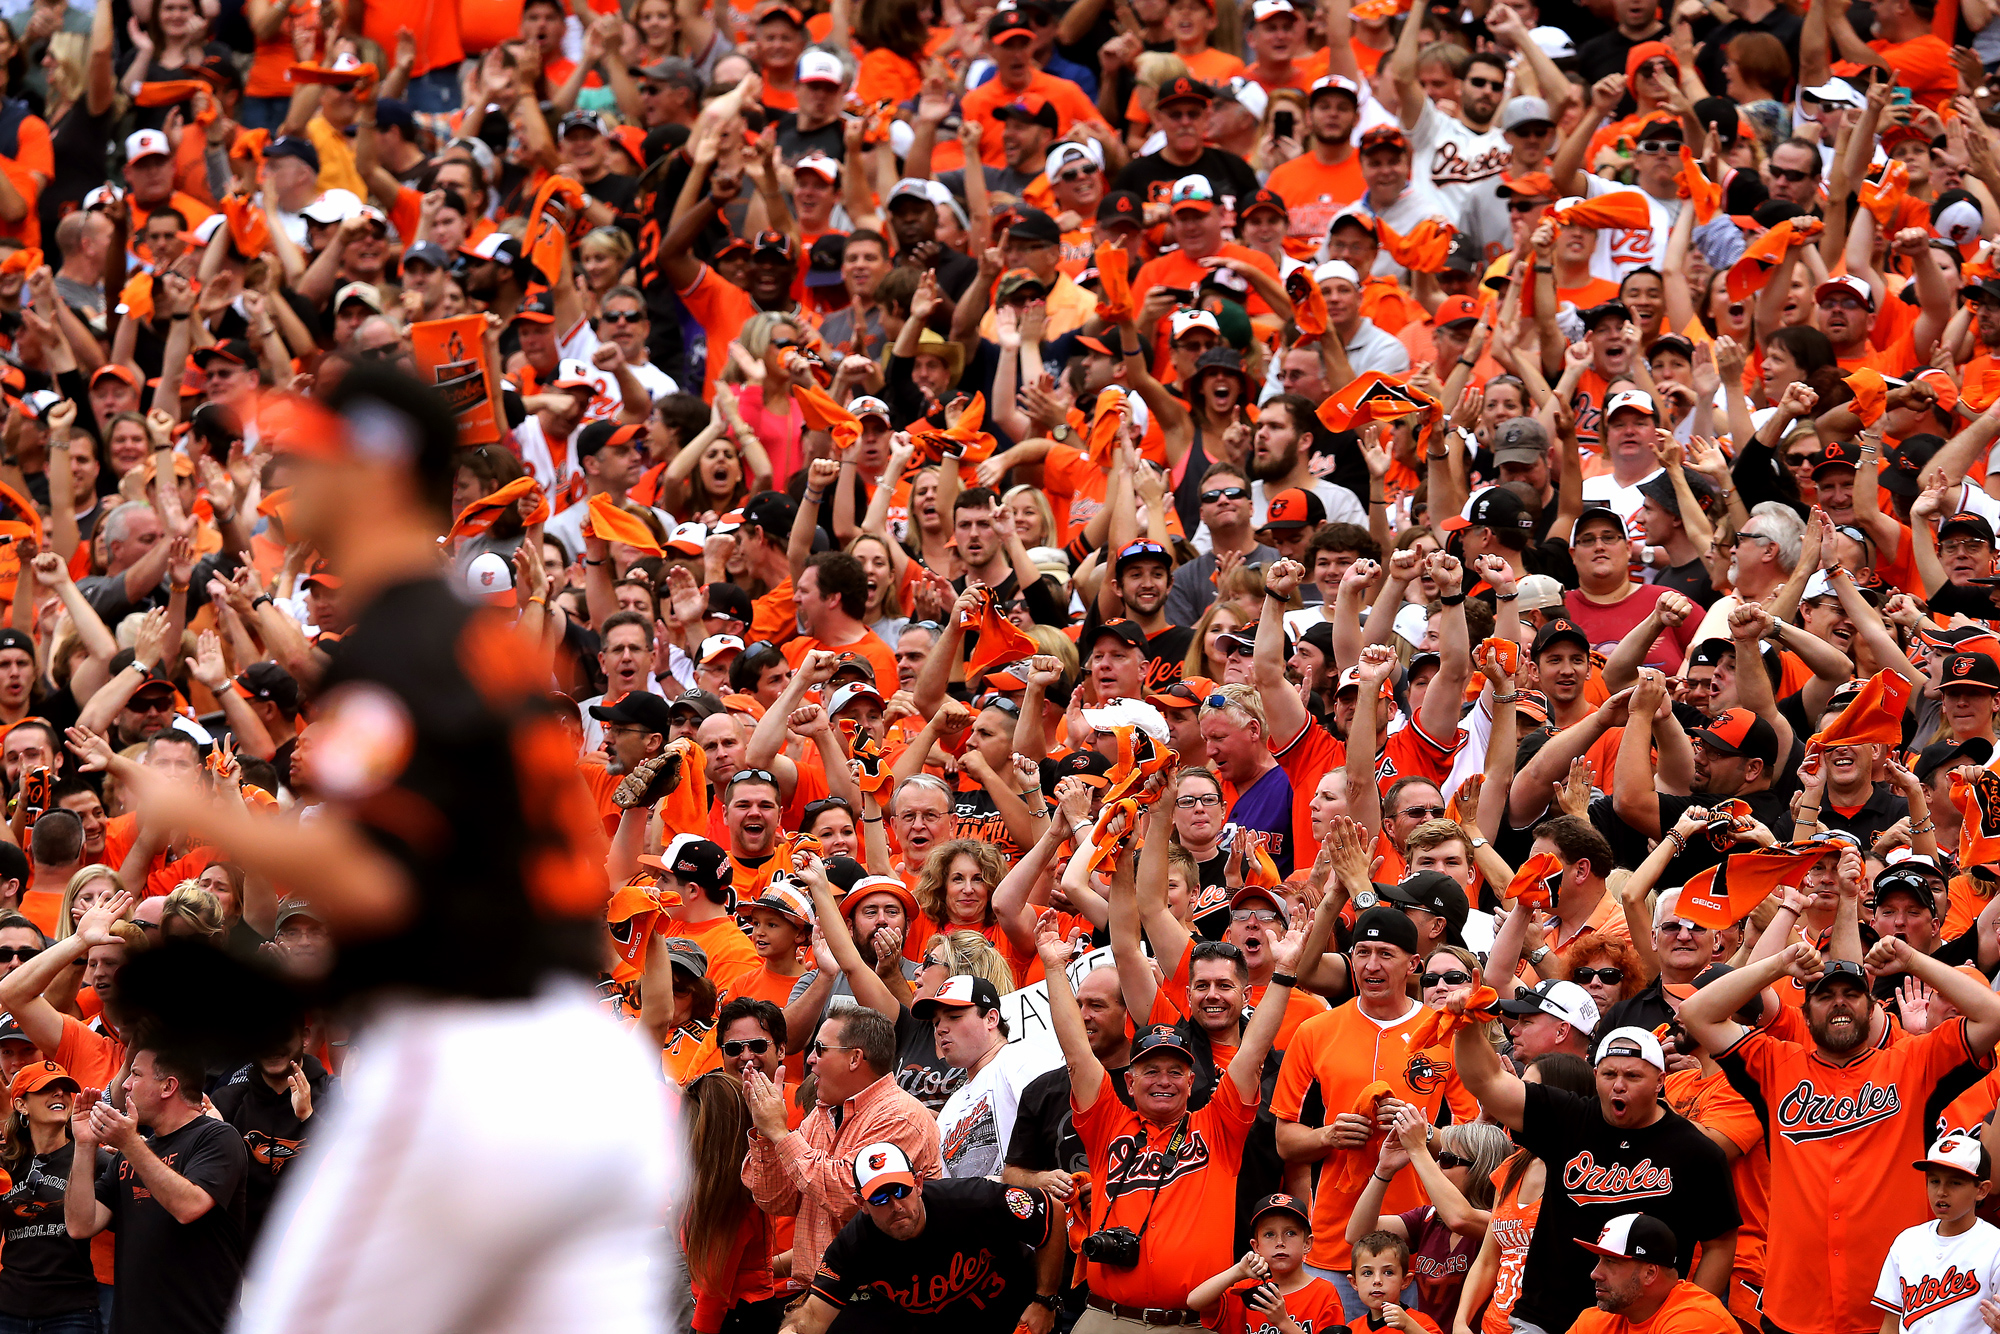 Fans cheer at the conclusion of Game Two of the American League Division Series against the Detroit Tigers at Oriole Park at Camden Yards on October 3, 2014 in Baltimore, Maryland.